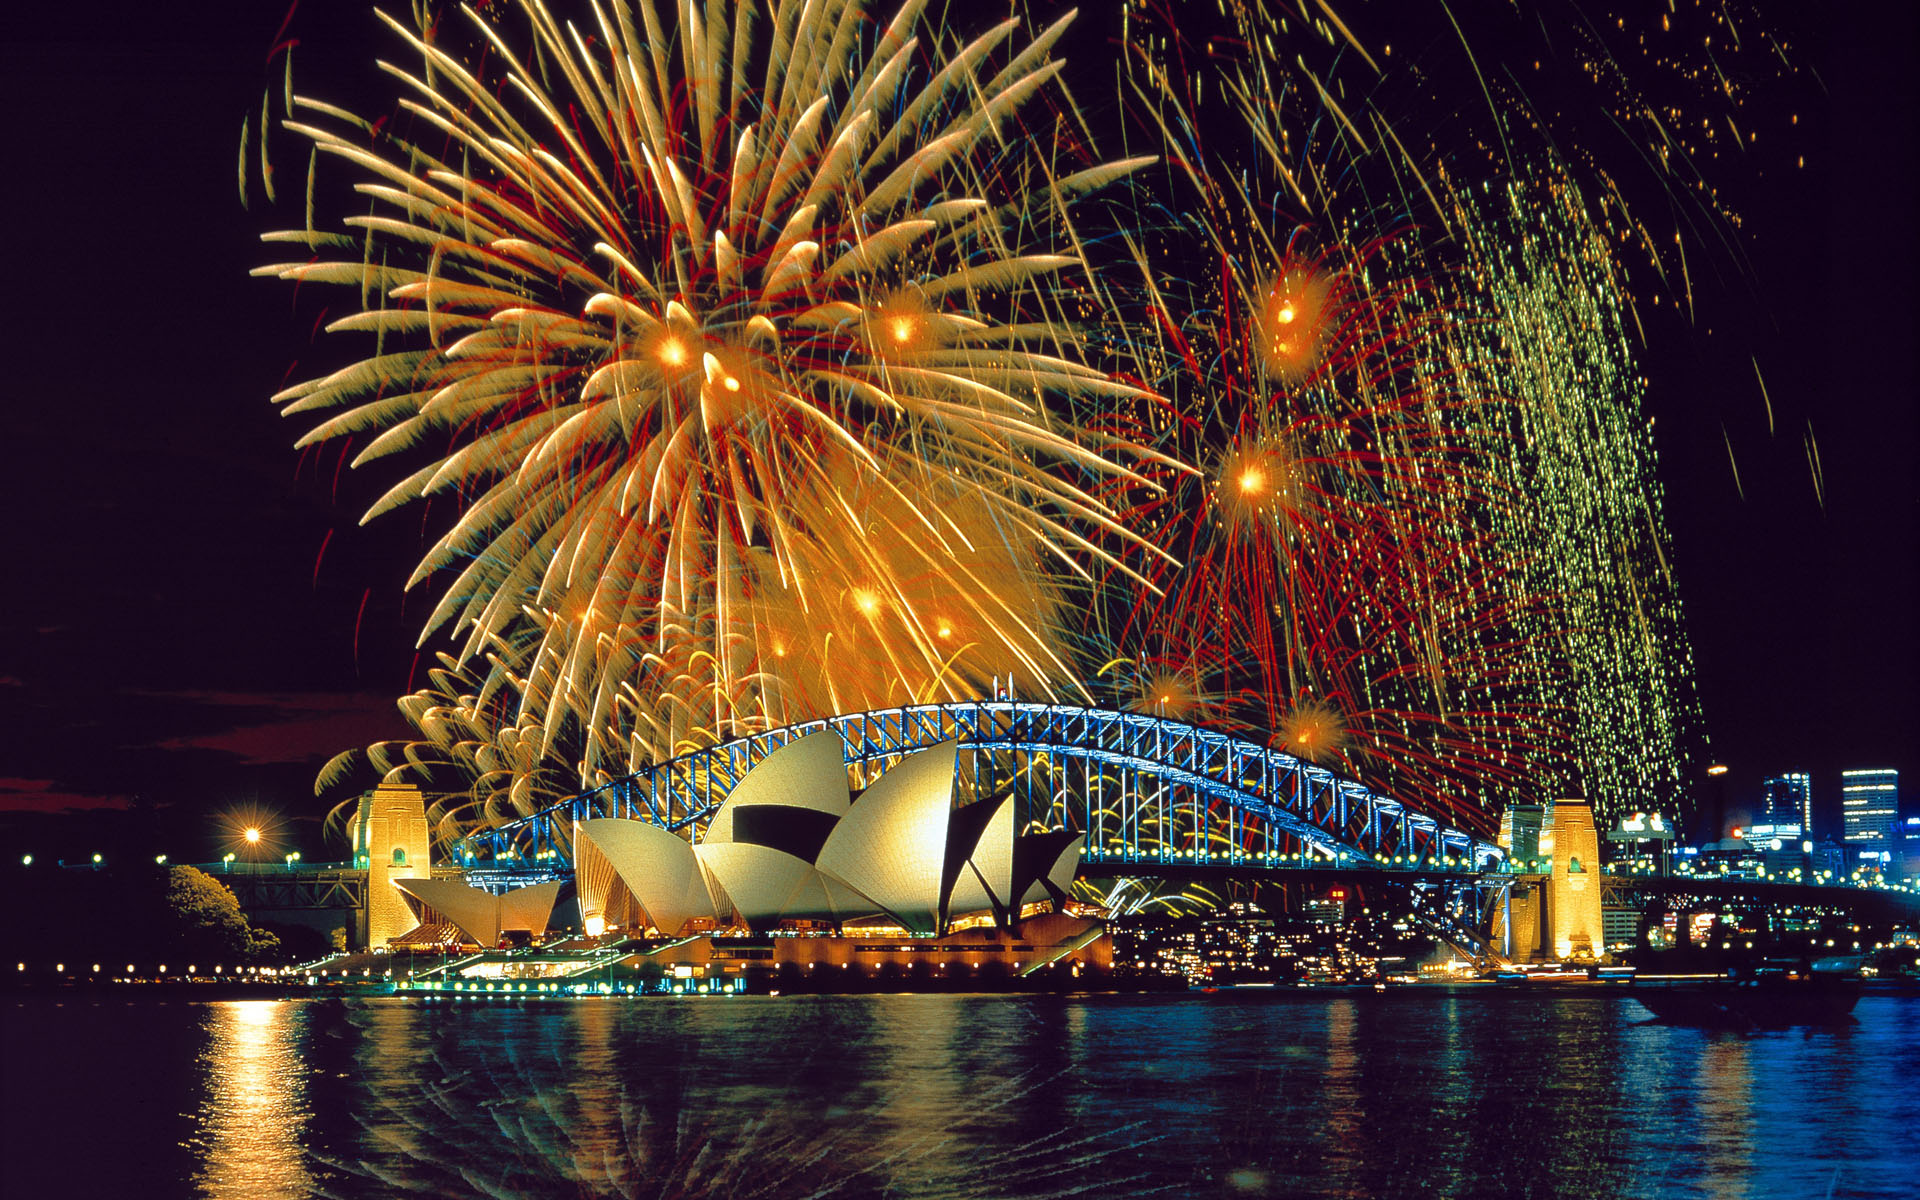 Wallpapers Download Sydney Fireworks 562.12 Kb